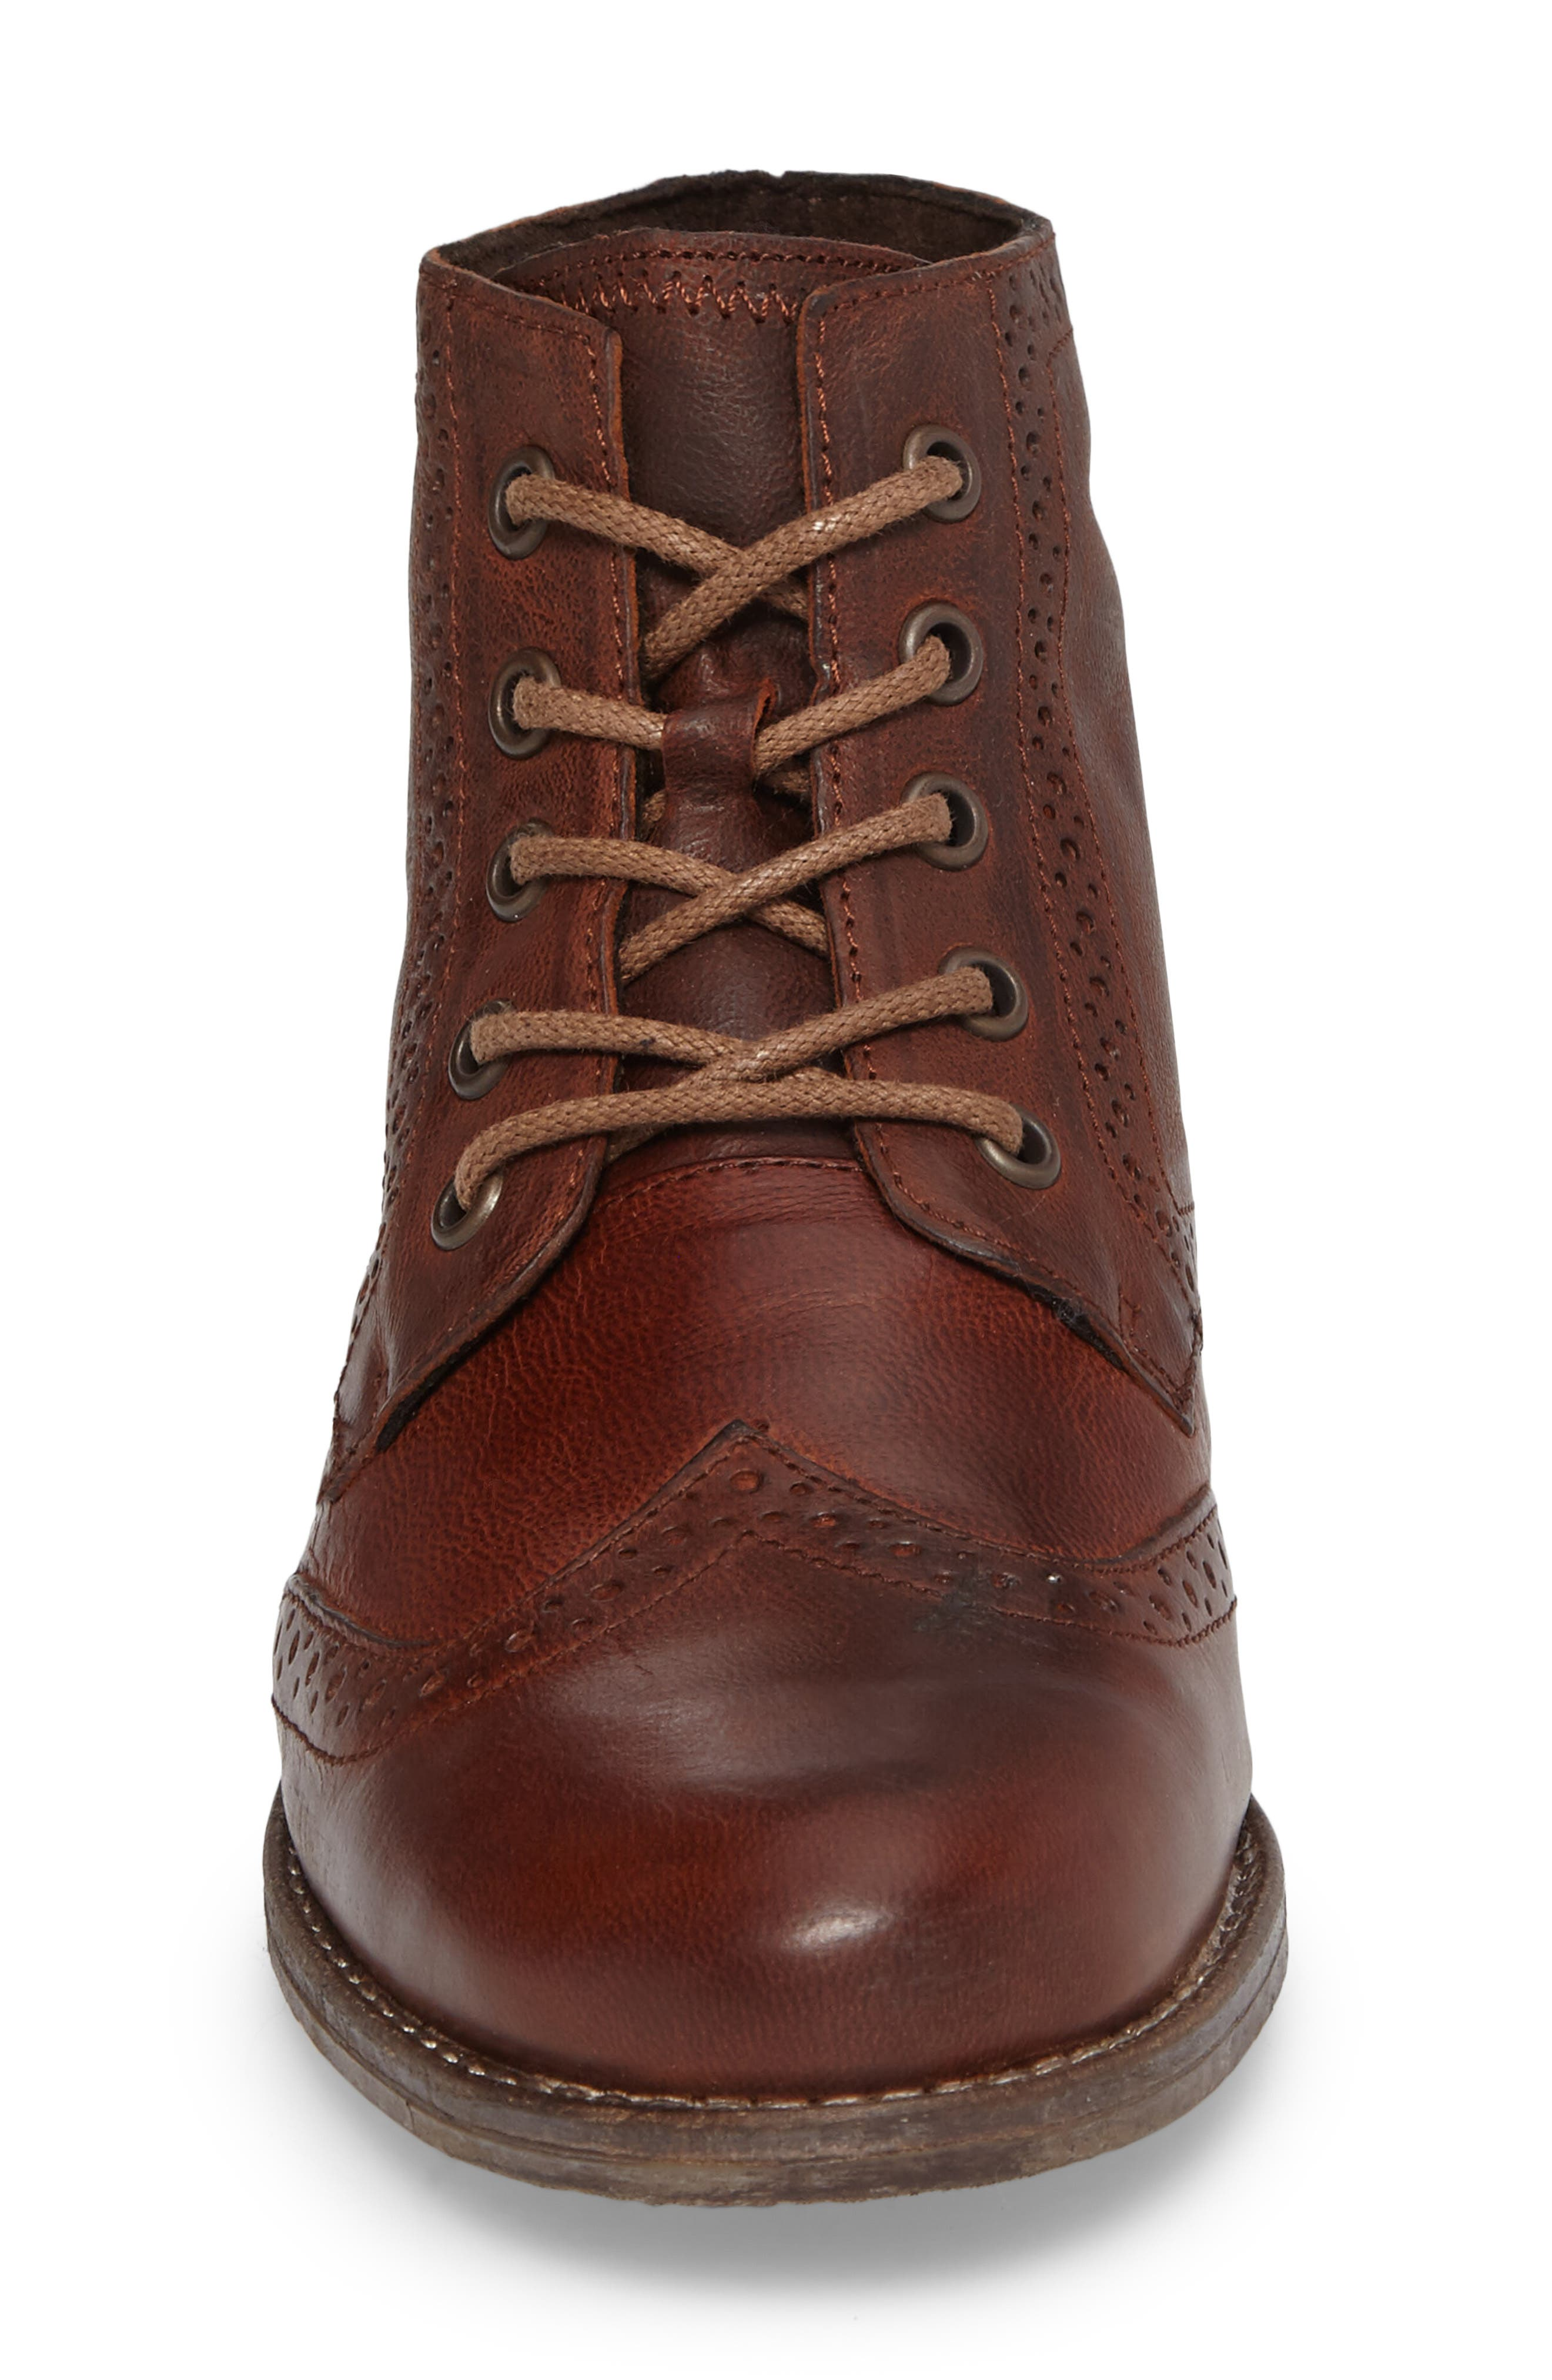 'Sienna 15' Wingtip Bootie,                             Alternate thumbnail 4, color,                             Camel Leather